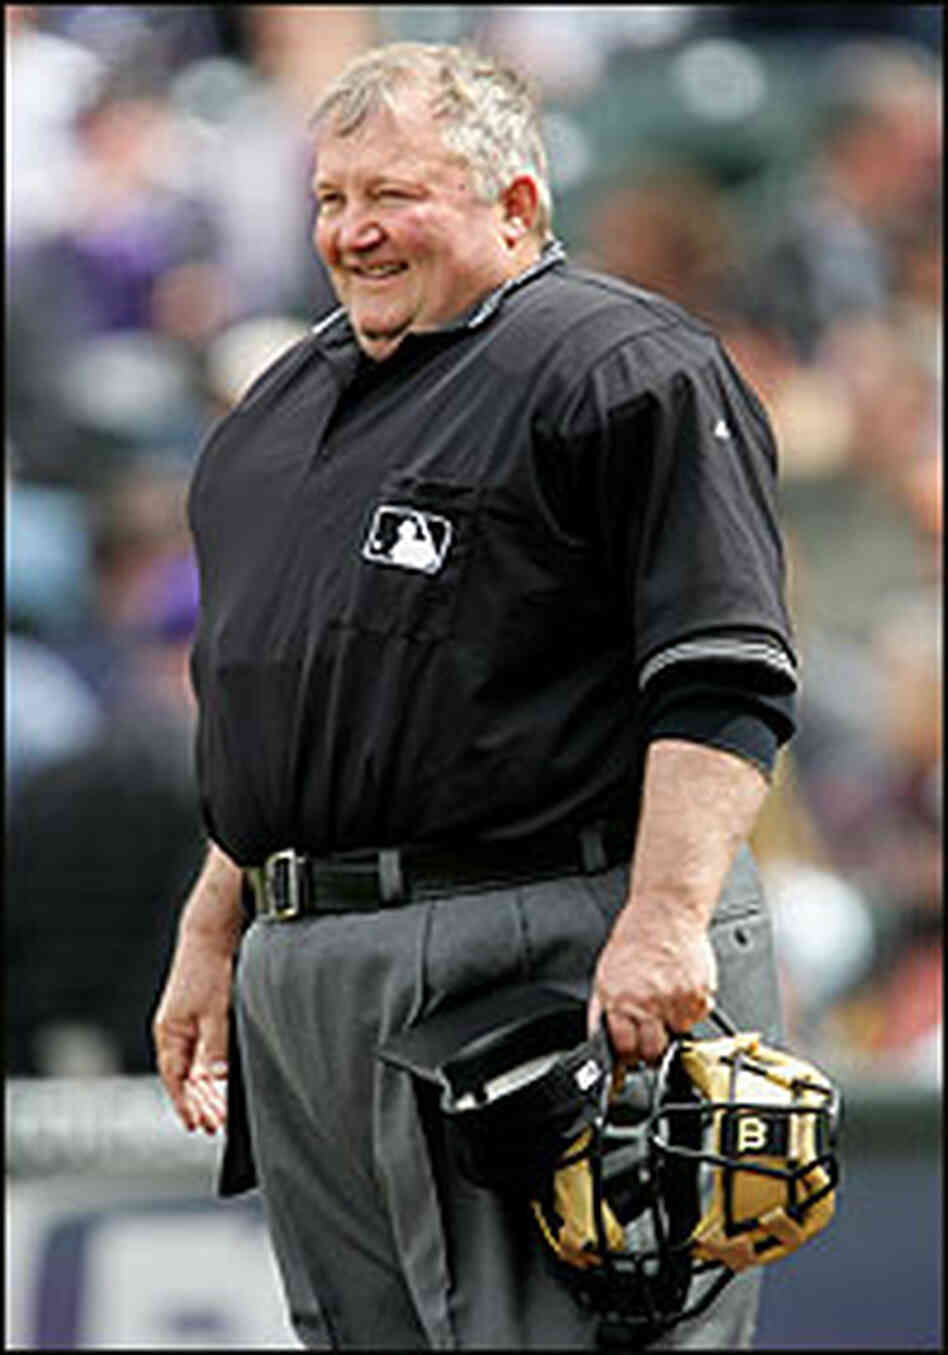 Umpire Celebrates 37 Years With The Major League Npr